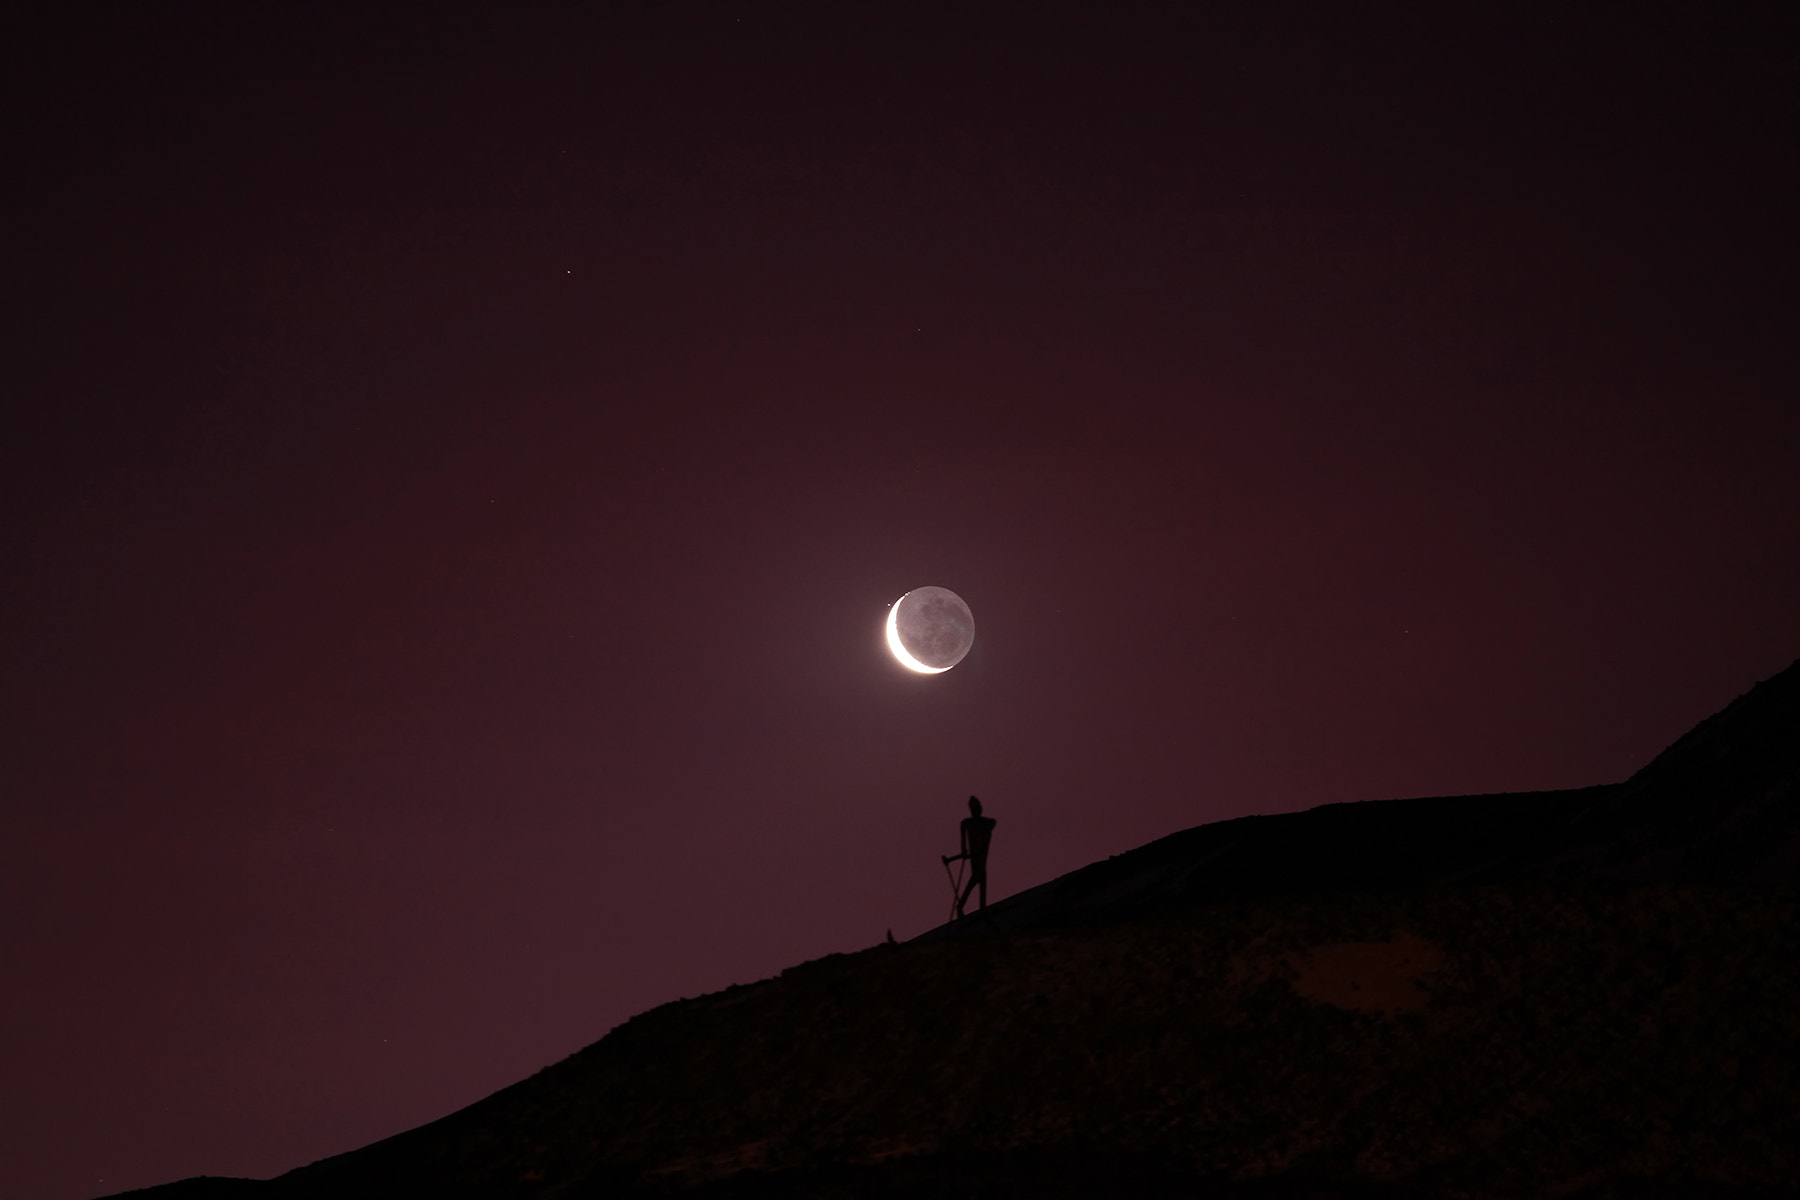 Photograph Skiing A Crescent Moon by Deven Stross on 500px